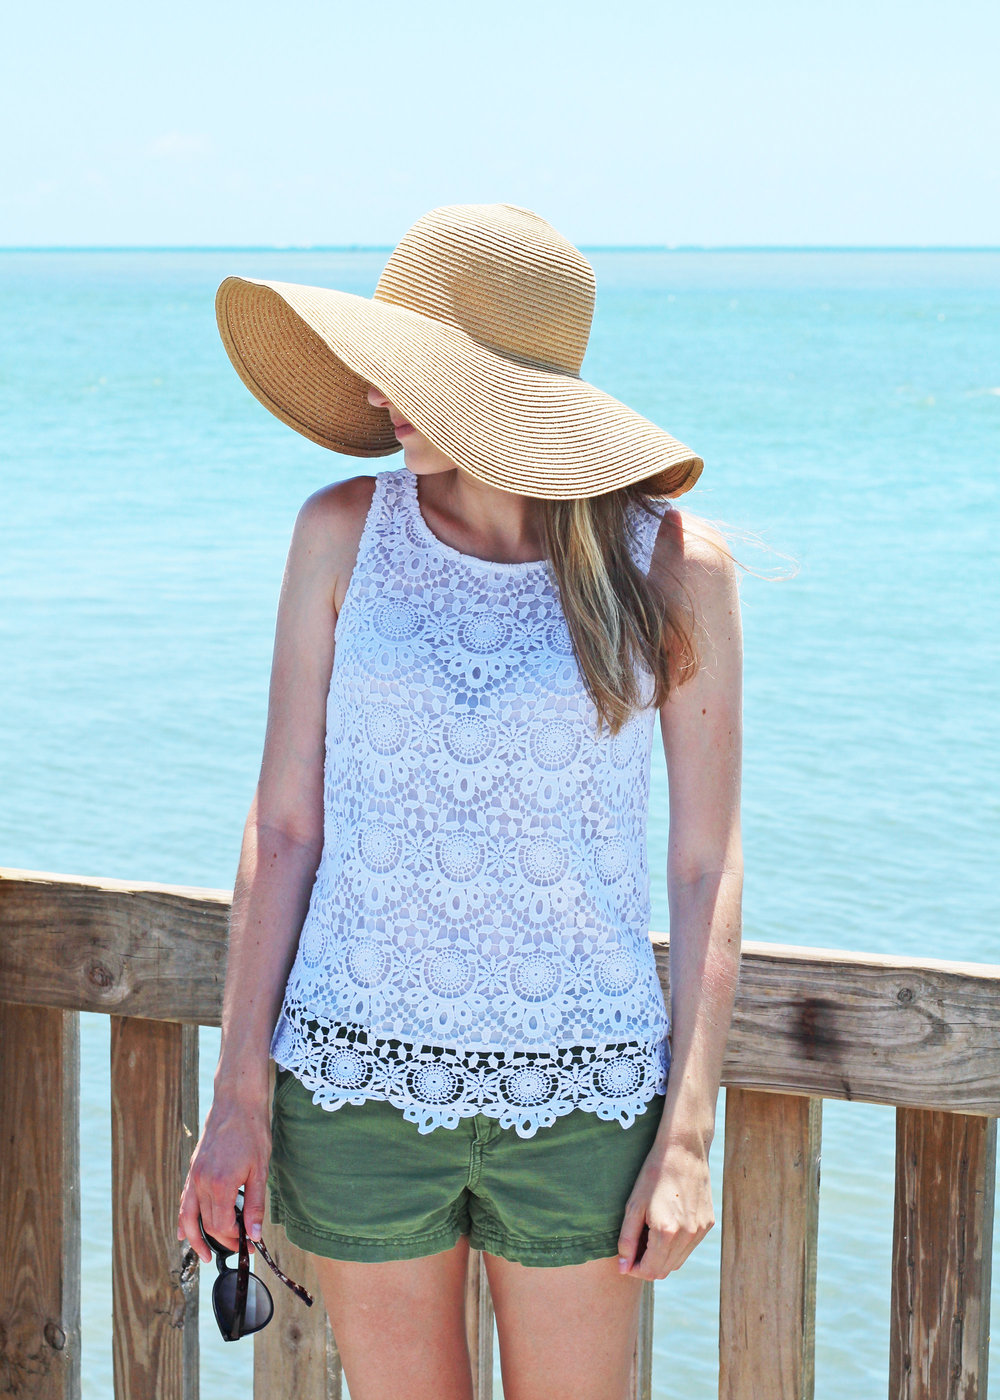 Sun hat outfit with white lace top and green shorts — Cotton Cashmere Cat Hair